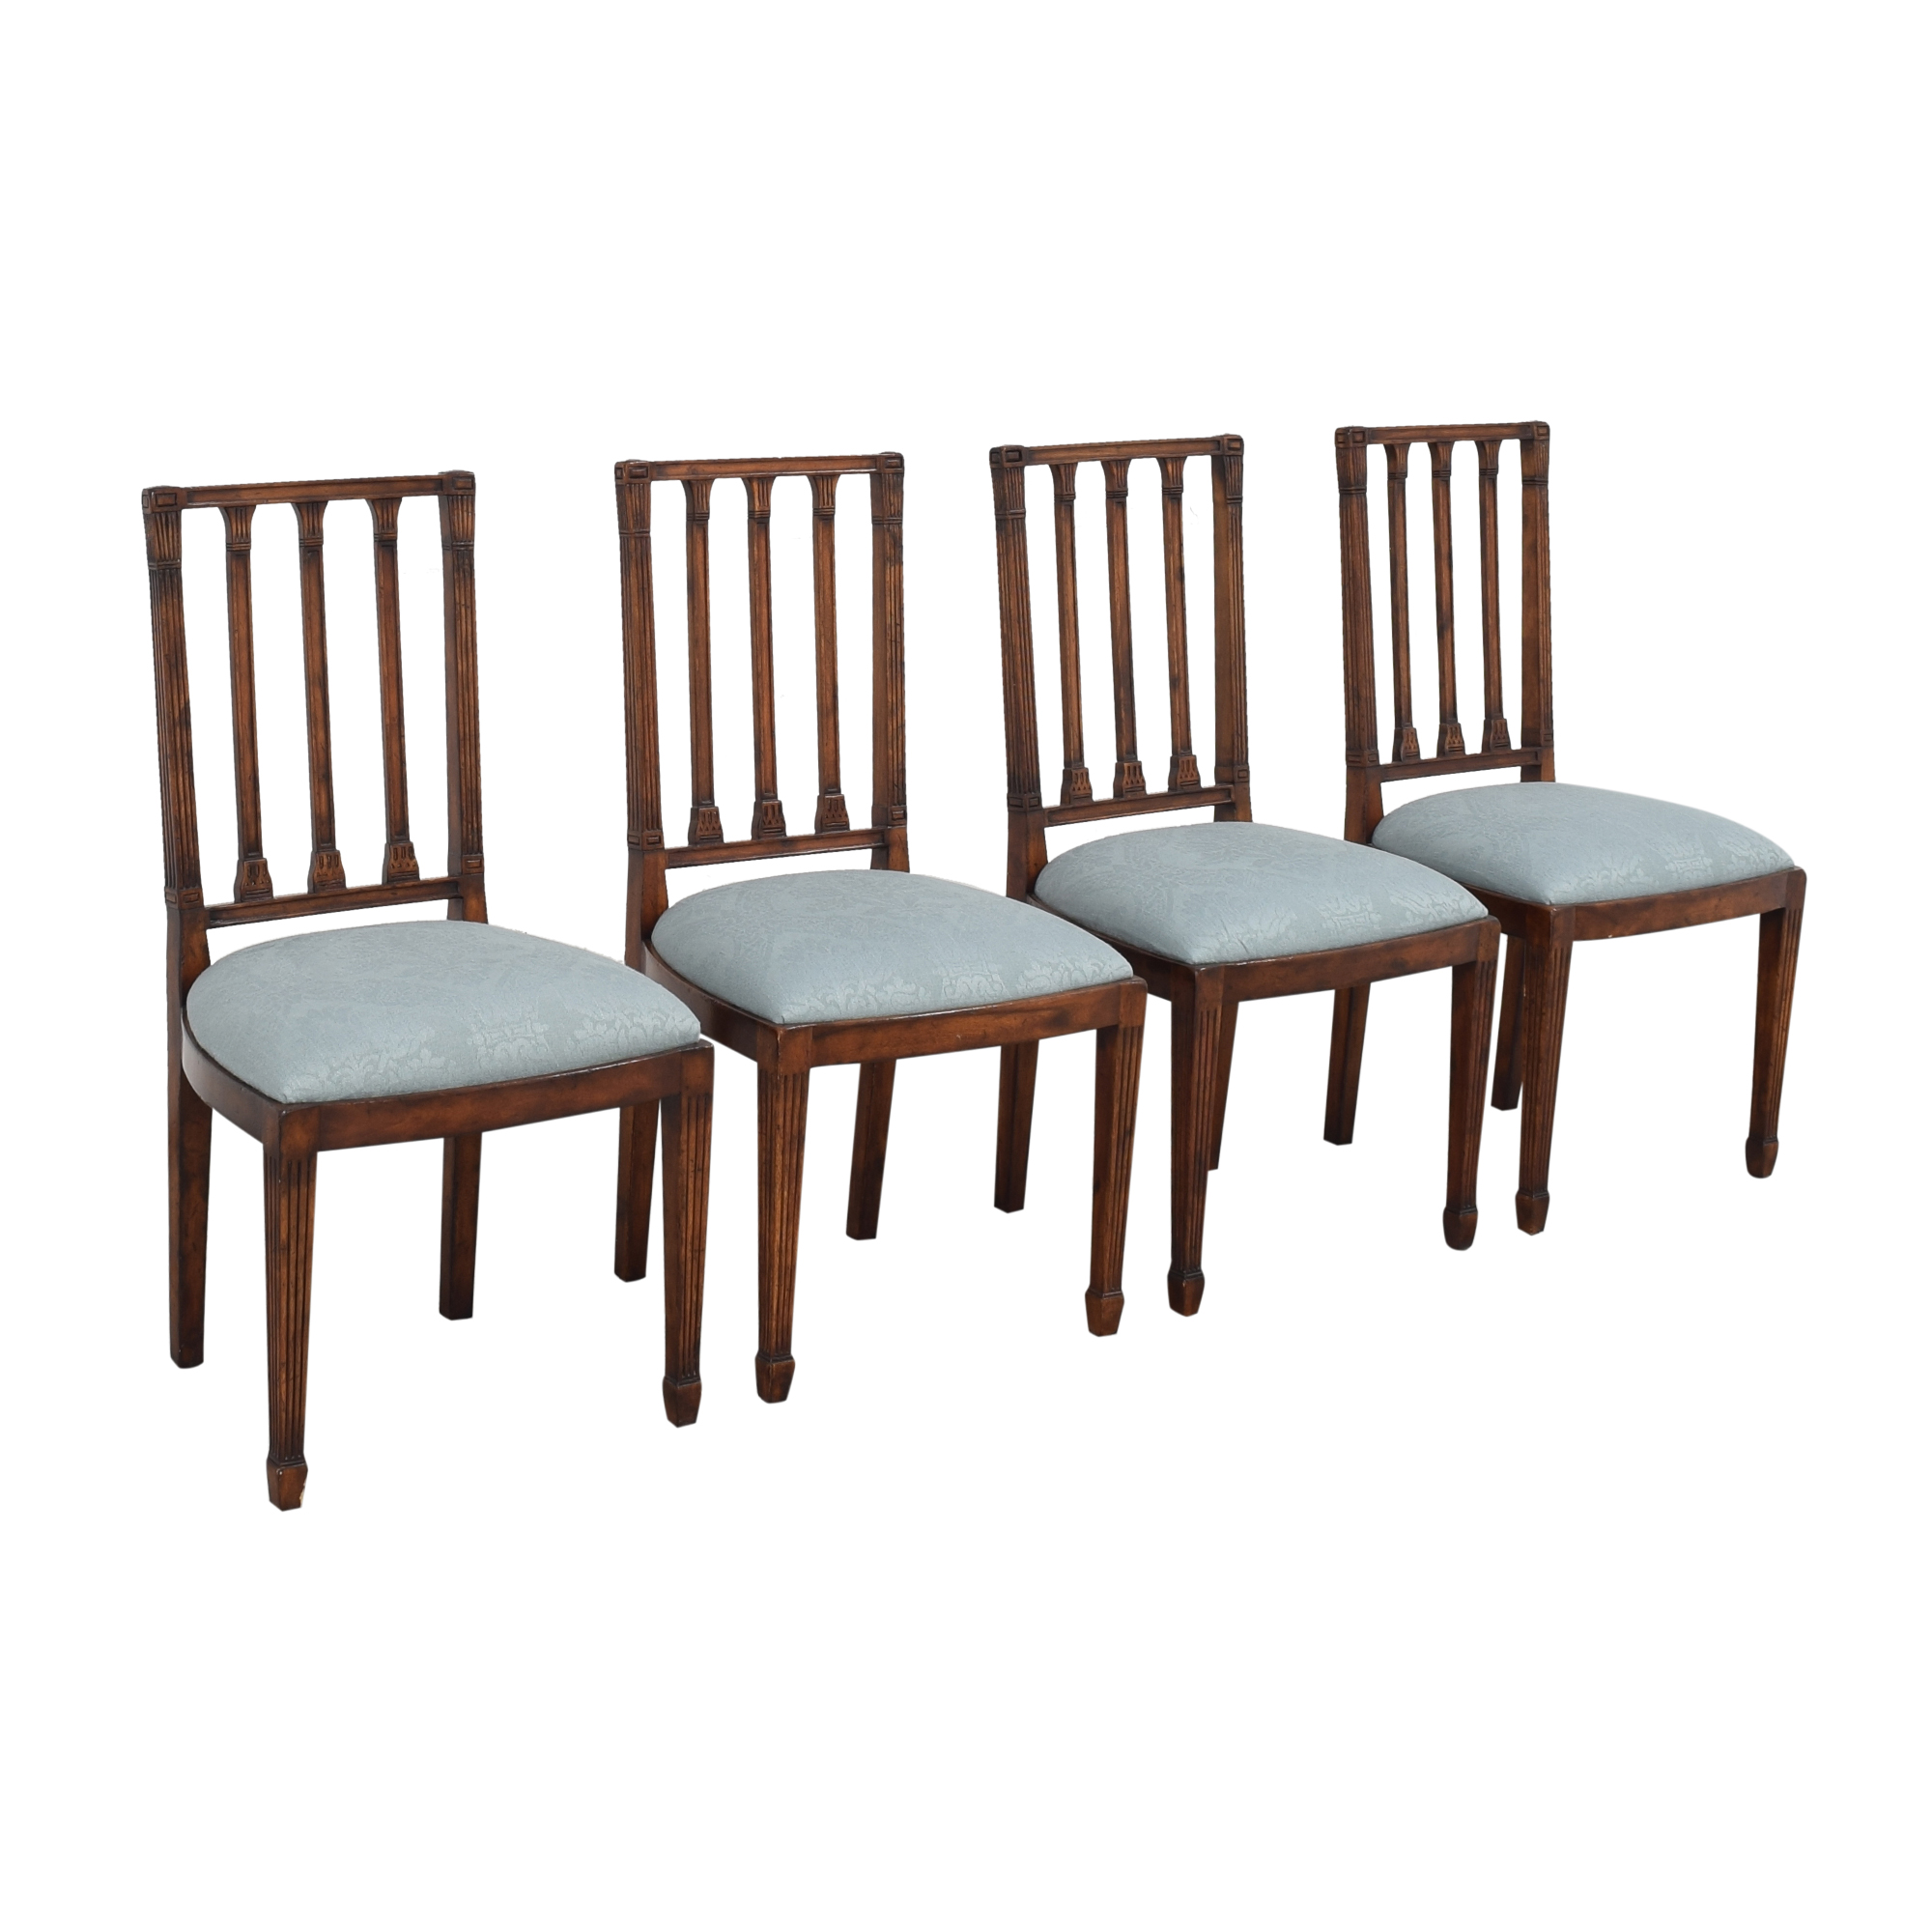 English Country Home English Country Home Upholstered Dining Chairs dark brown and light blue